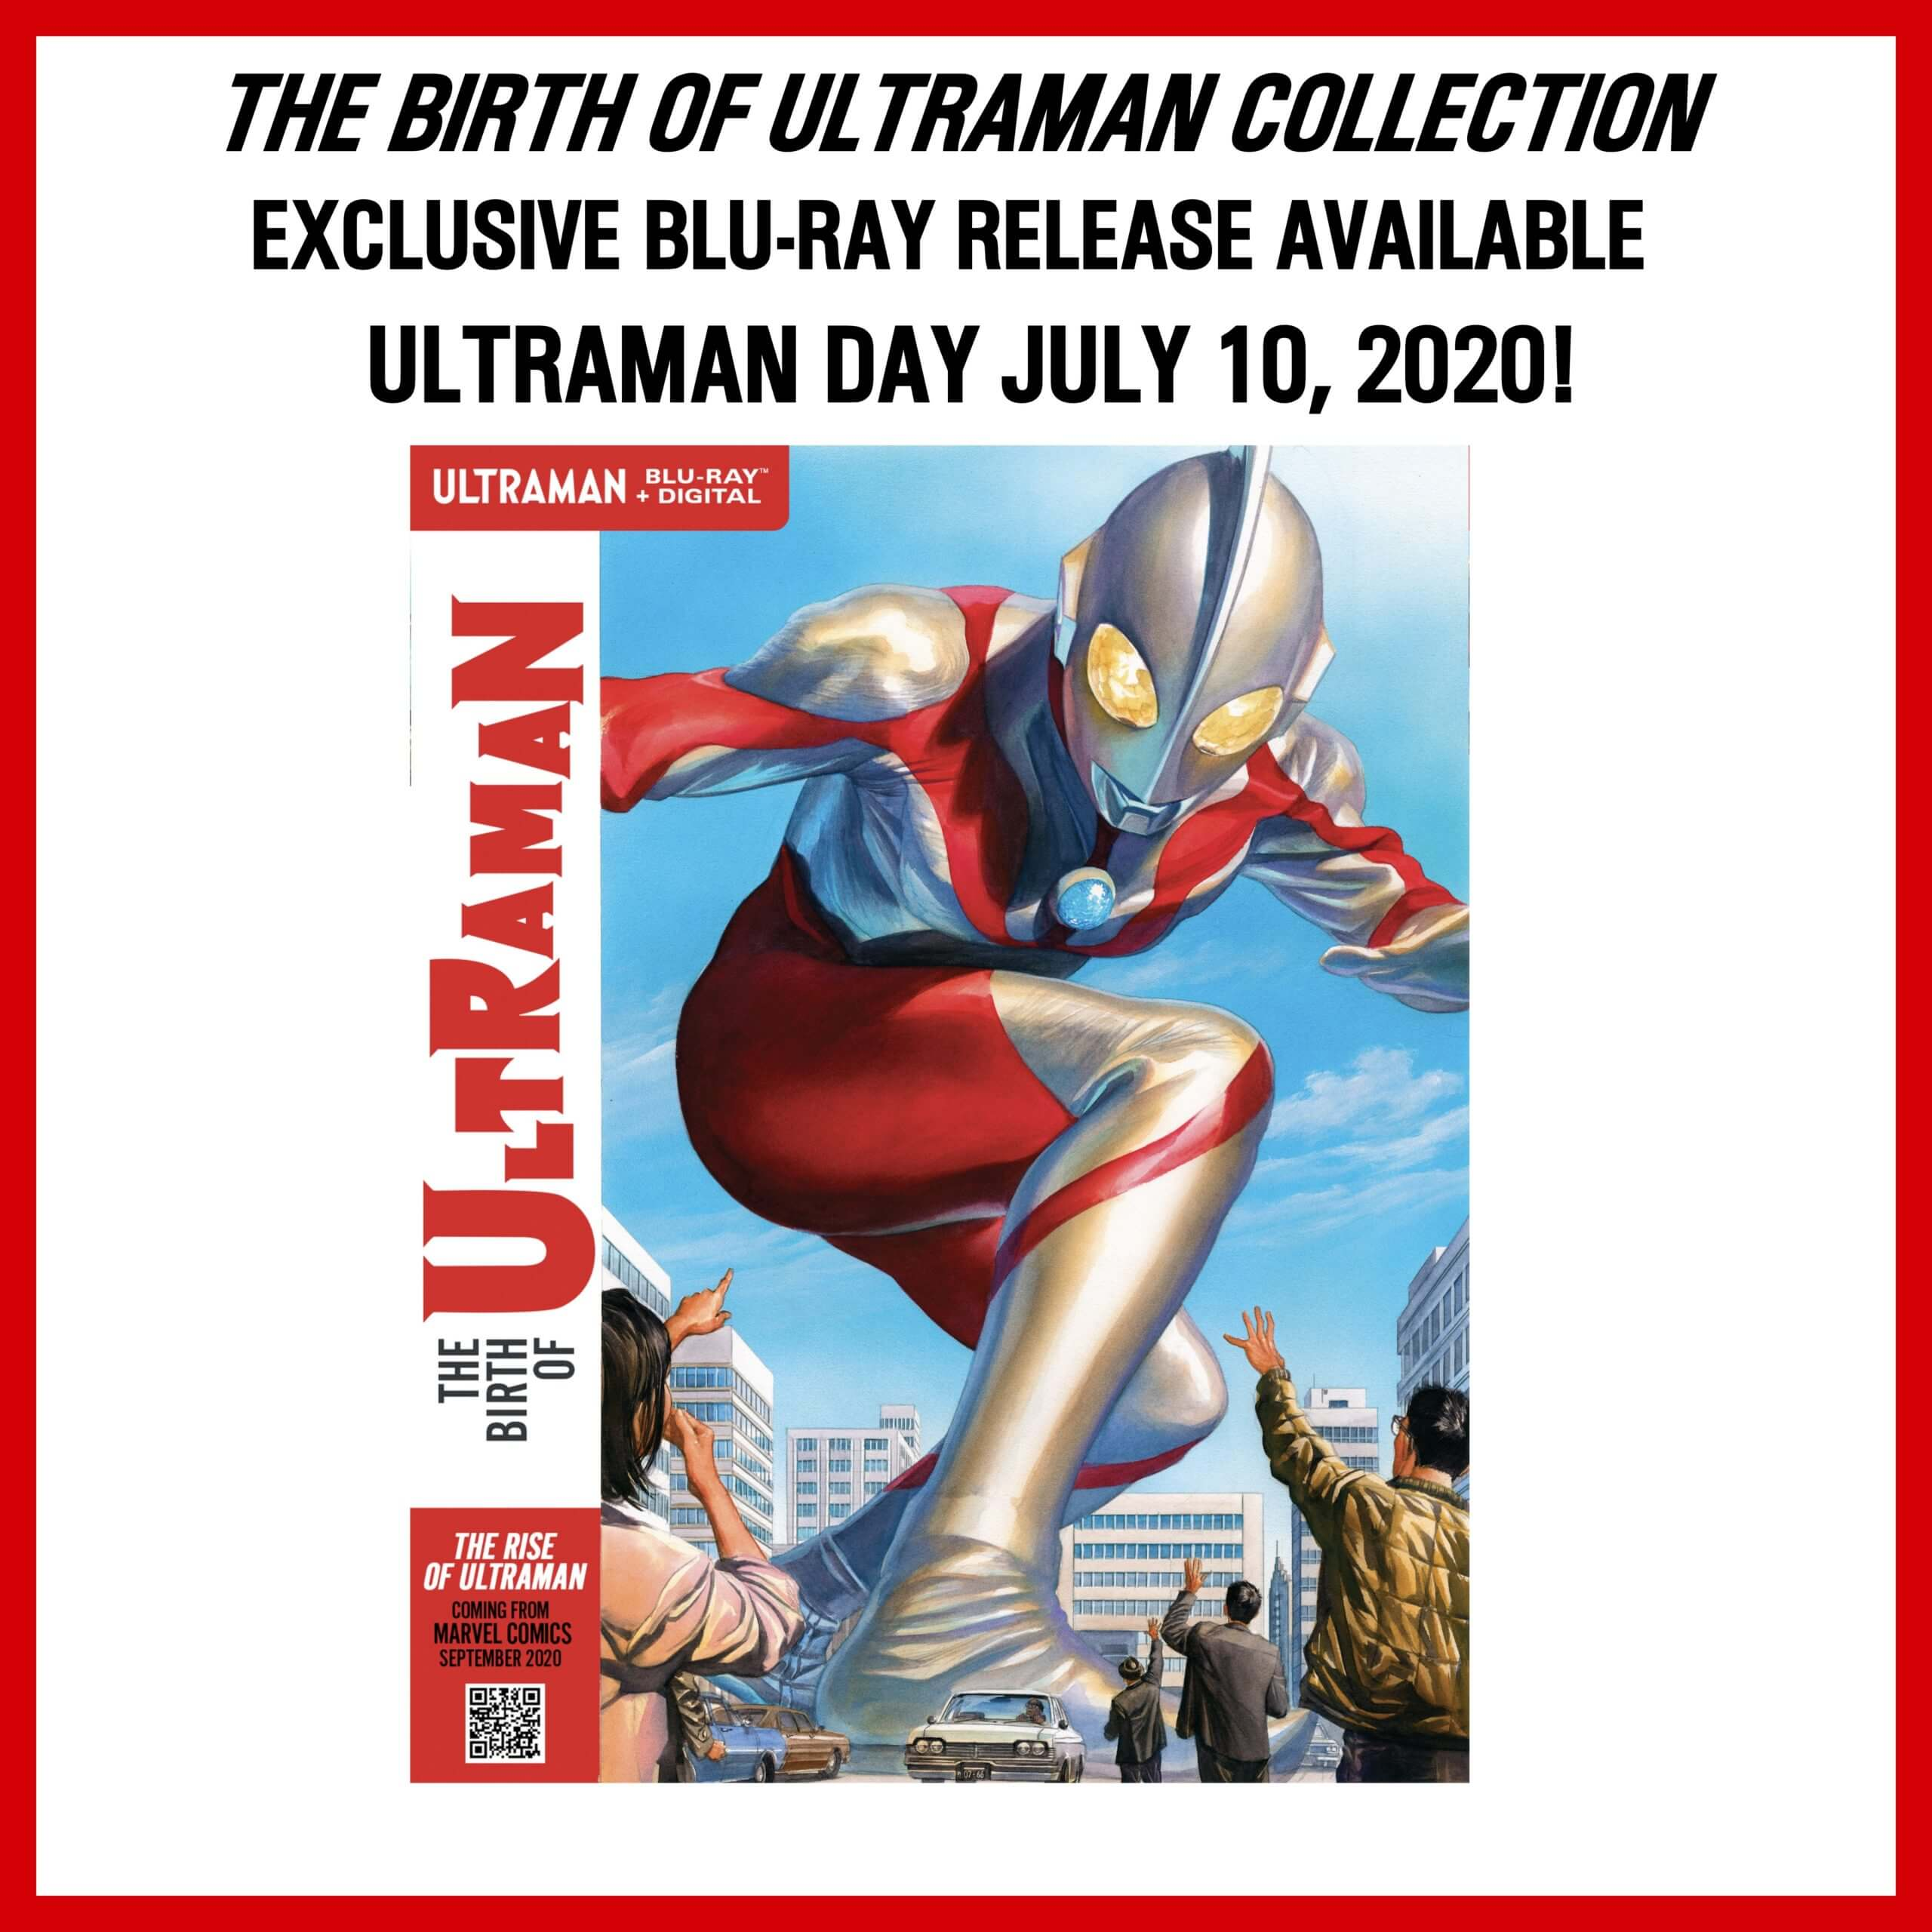 THE BIRTH OF ULTRAMAN COLLECTION EXCLUSIVE BLU-RAY RELEASE  FOR ULTRAMAN DAY JULY 10, 2020!